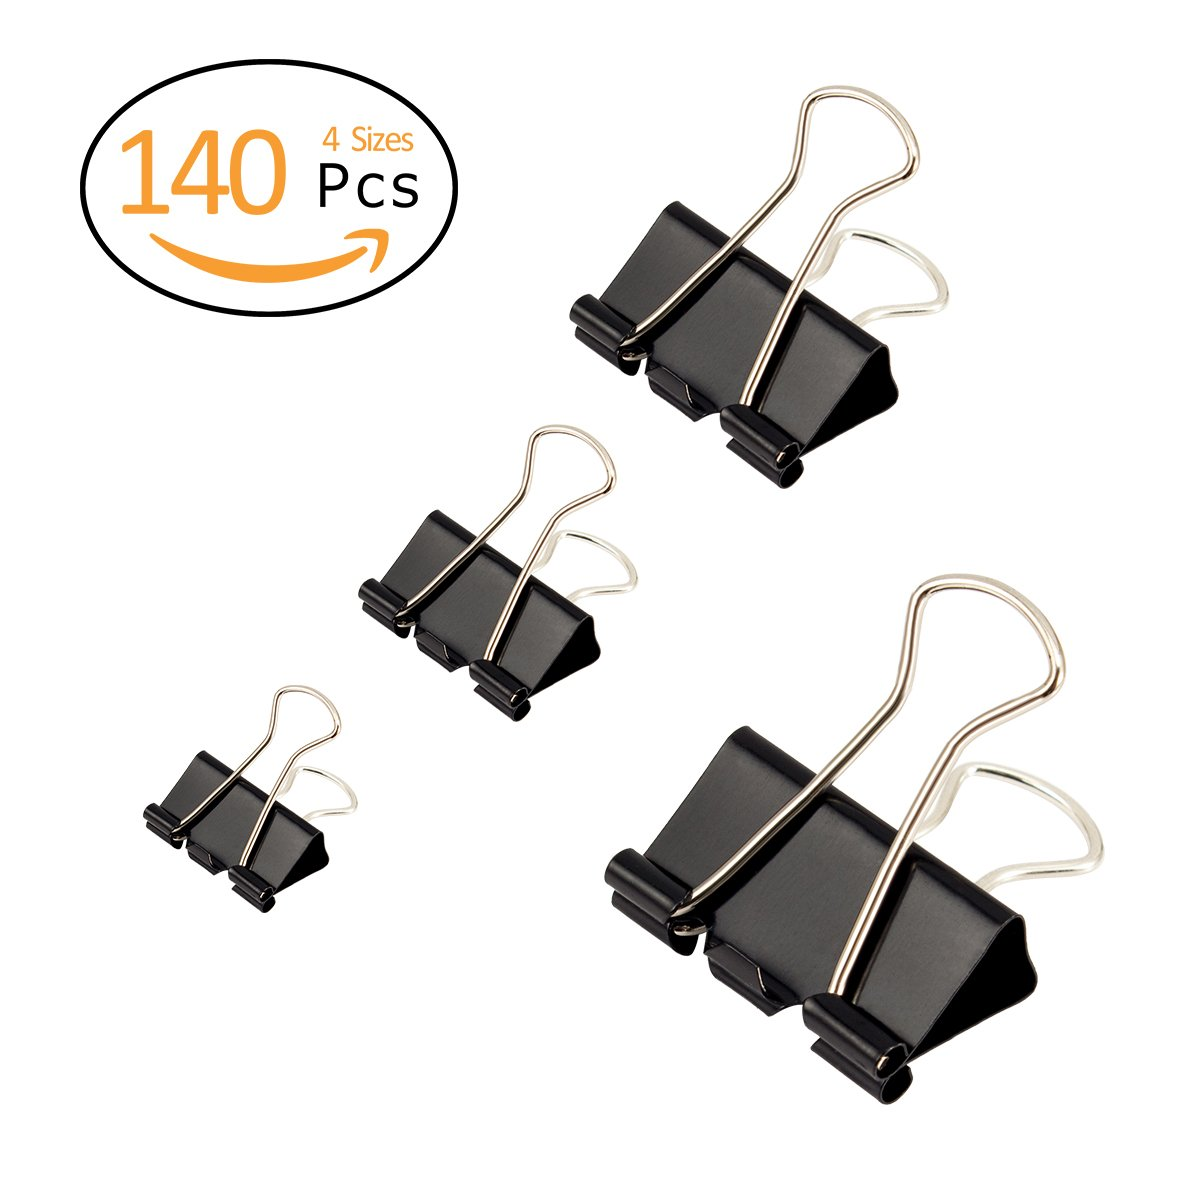 Anphsin 140Pcs Binder Clips Assorted Sizes – Black Paper Clamp School Binders Office Clips (0.6inch, 0.75inch, 1inch, 1.25inch)